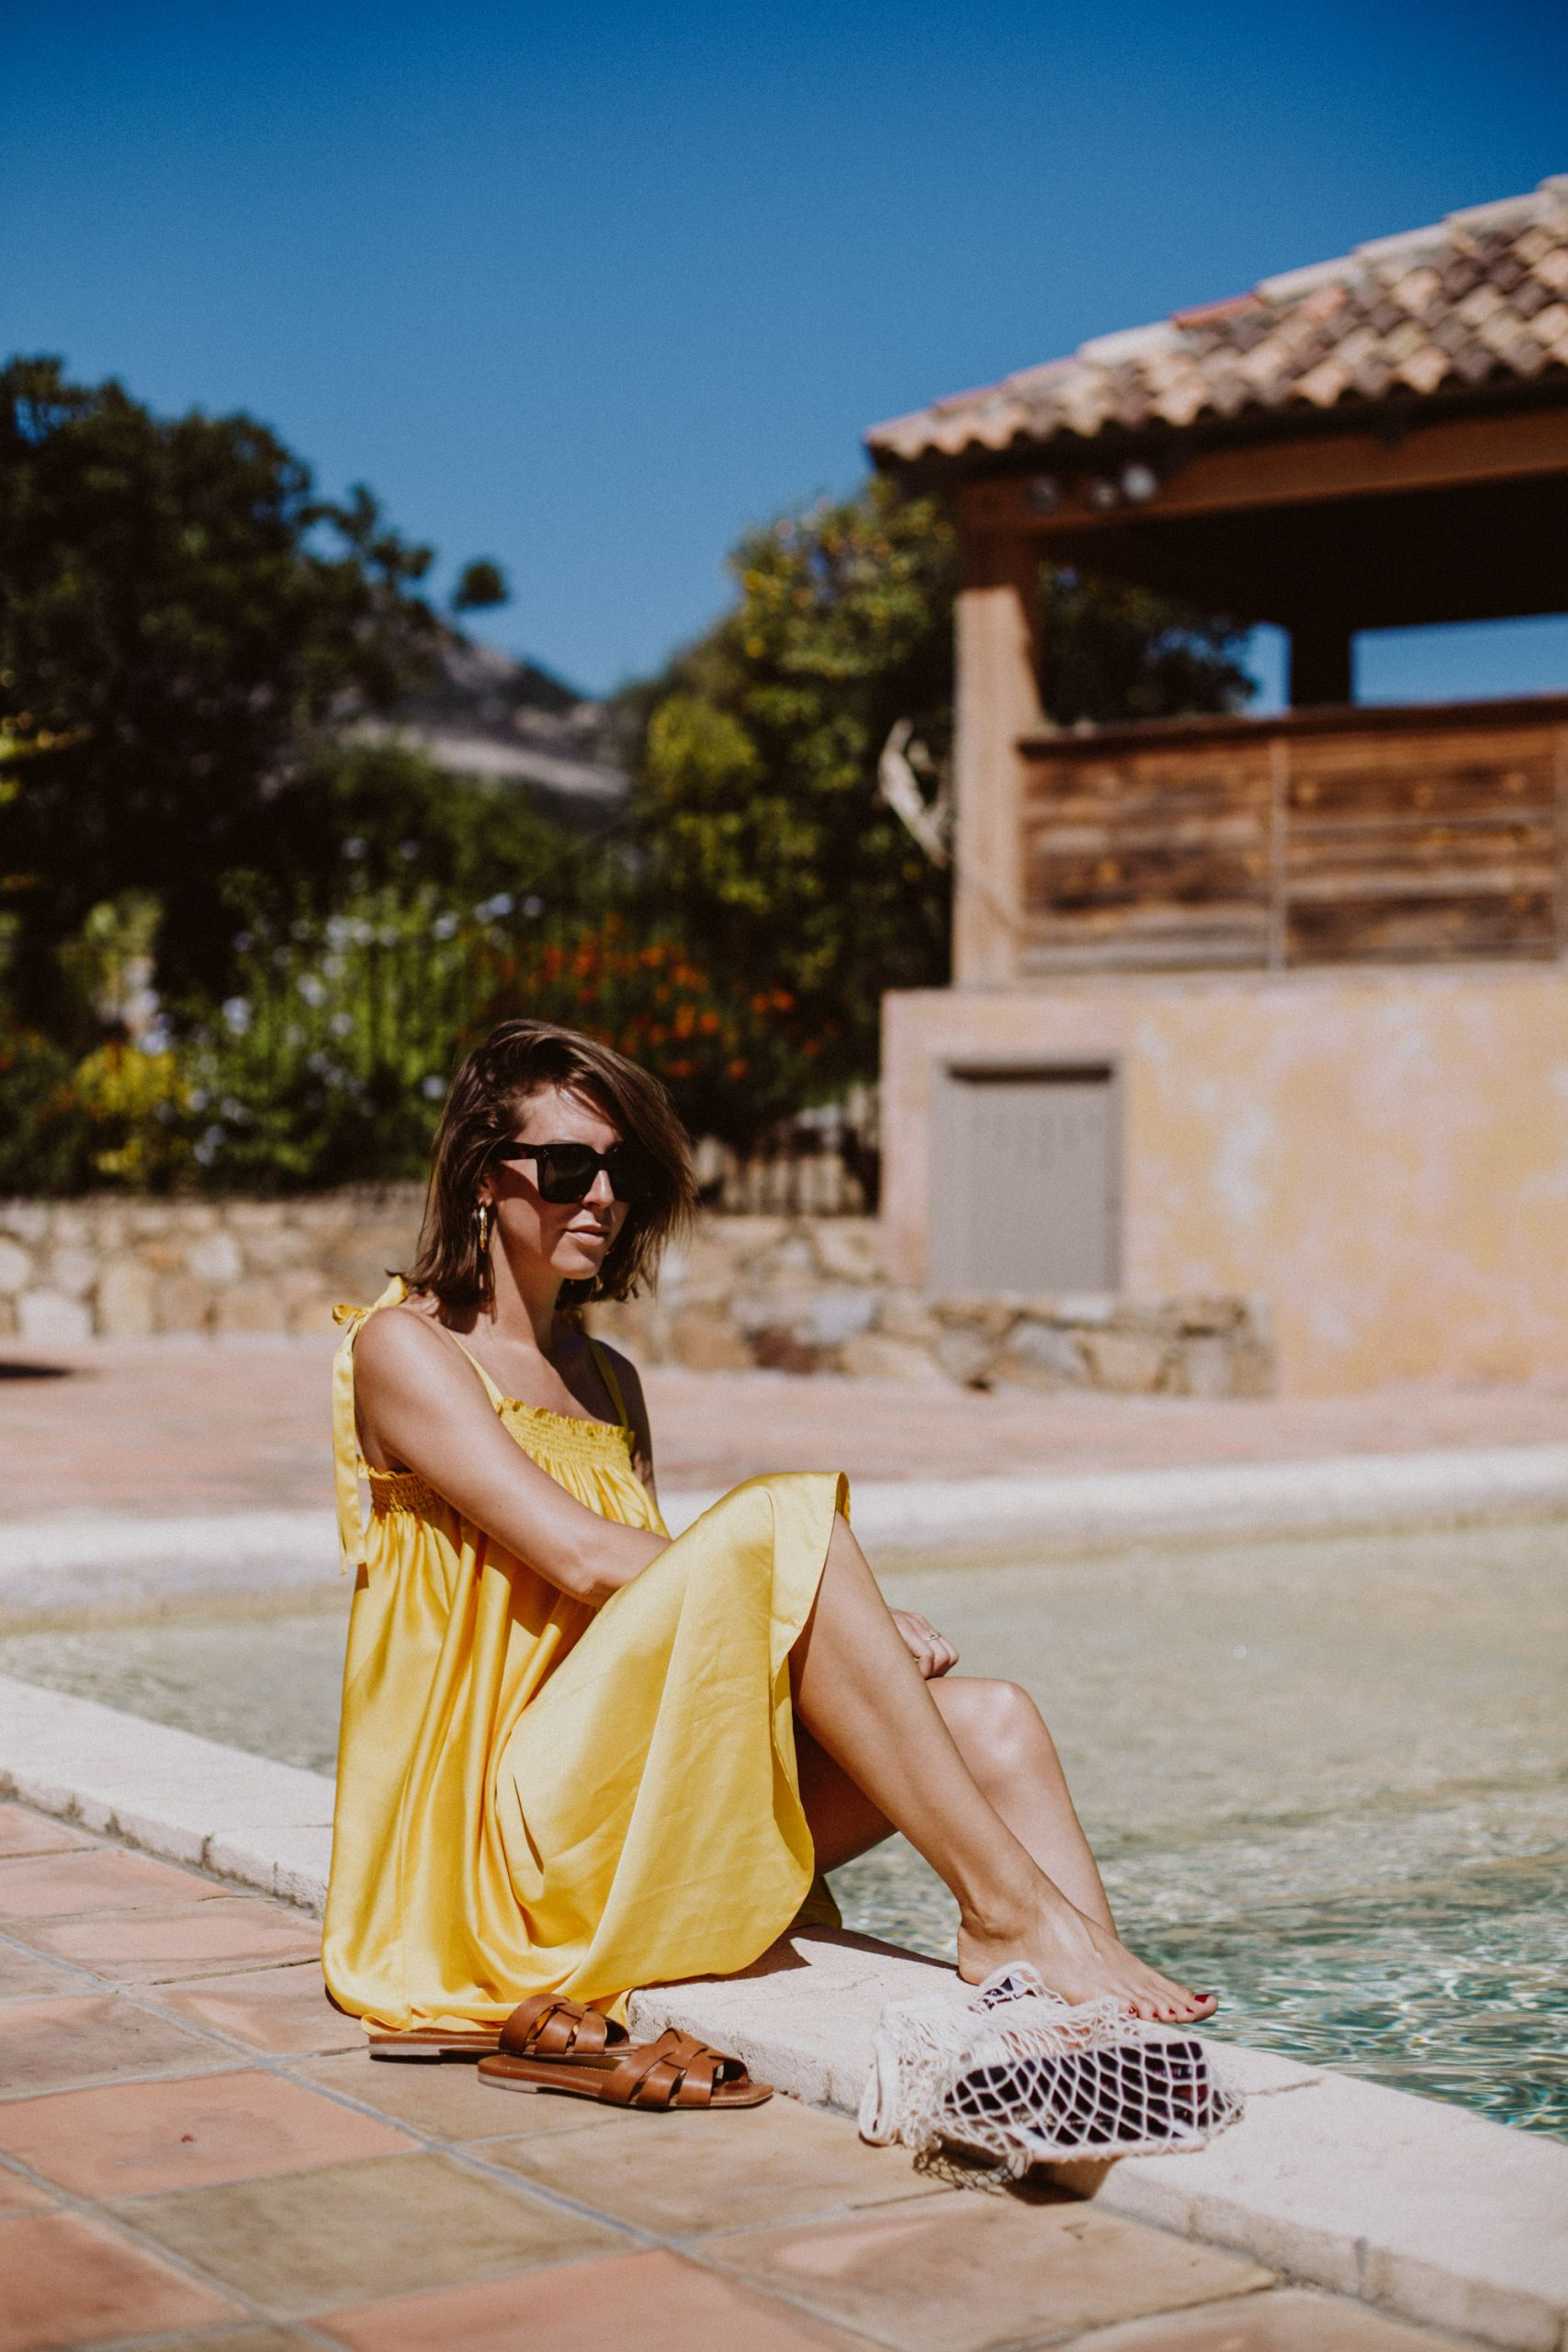 Editor's Pick: Poolside | The Daily Dose